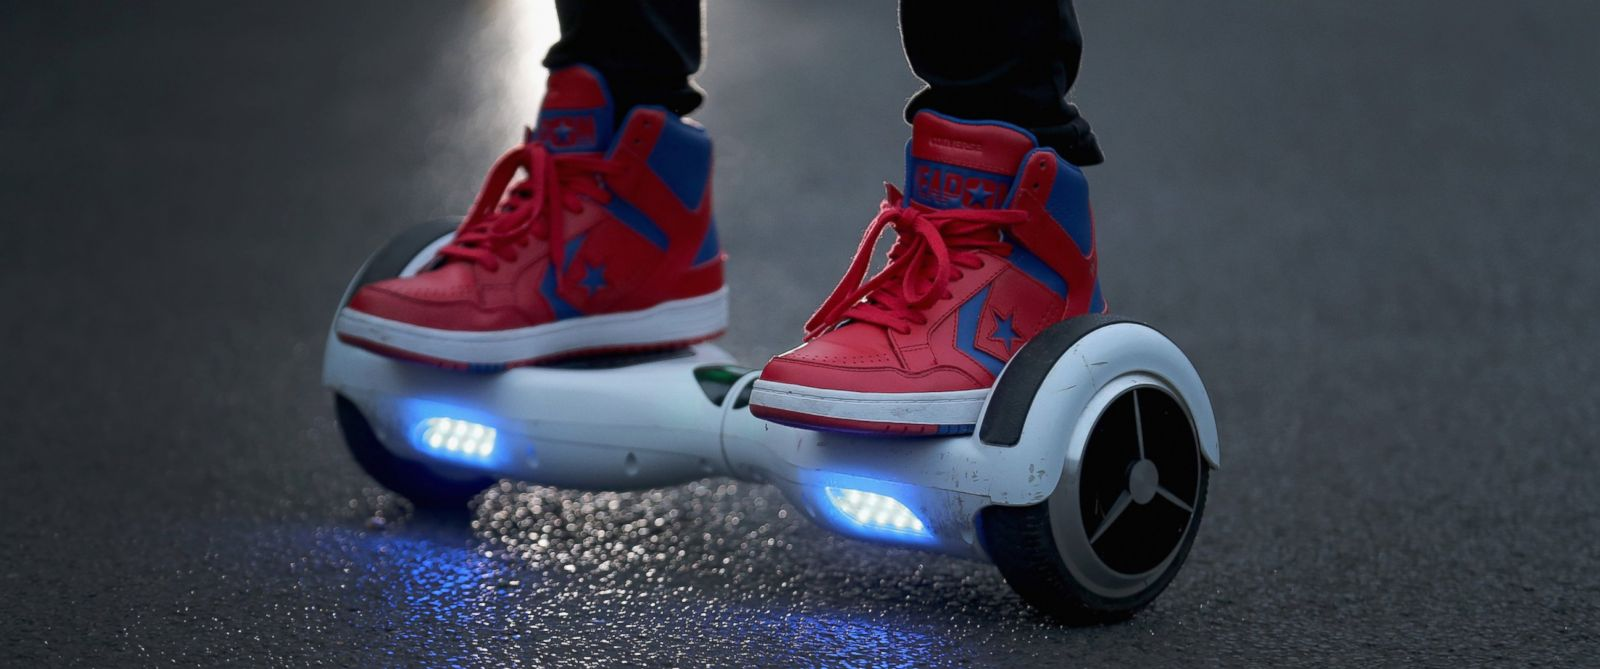 PHOTO: This file photo shows a youth riding a hoverboard, Oct. 13, 2015 in Knutsford, England.